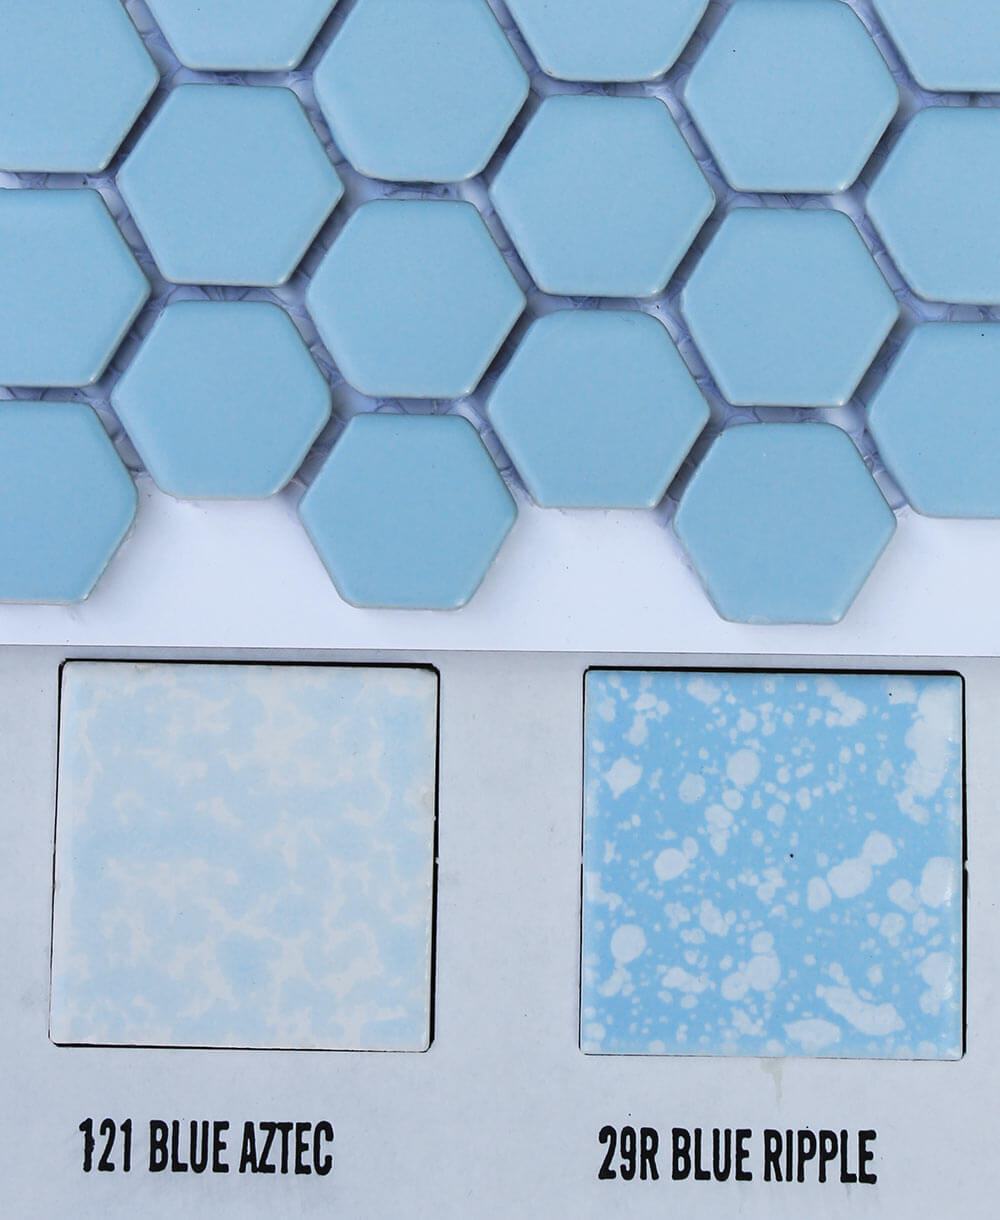 2 new porcelain hex tile floor options for your vintage pastel blue hex ceramic tile dailygadgetfo Choice Image